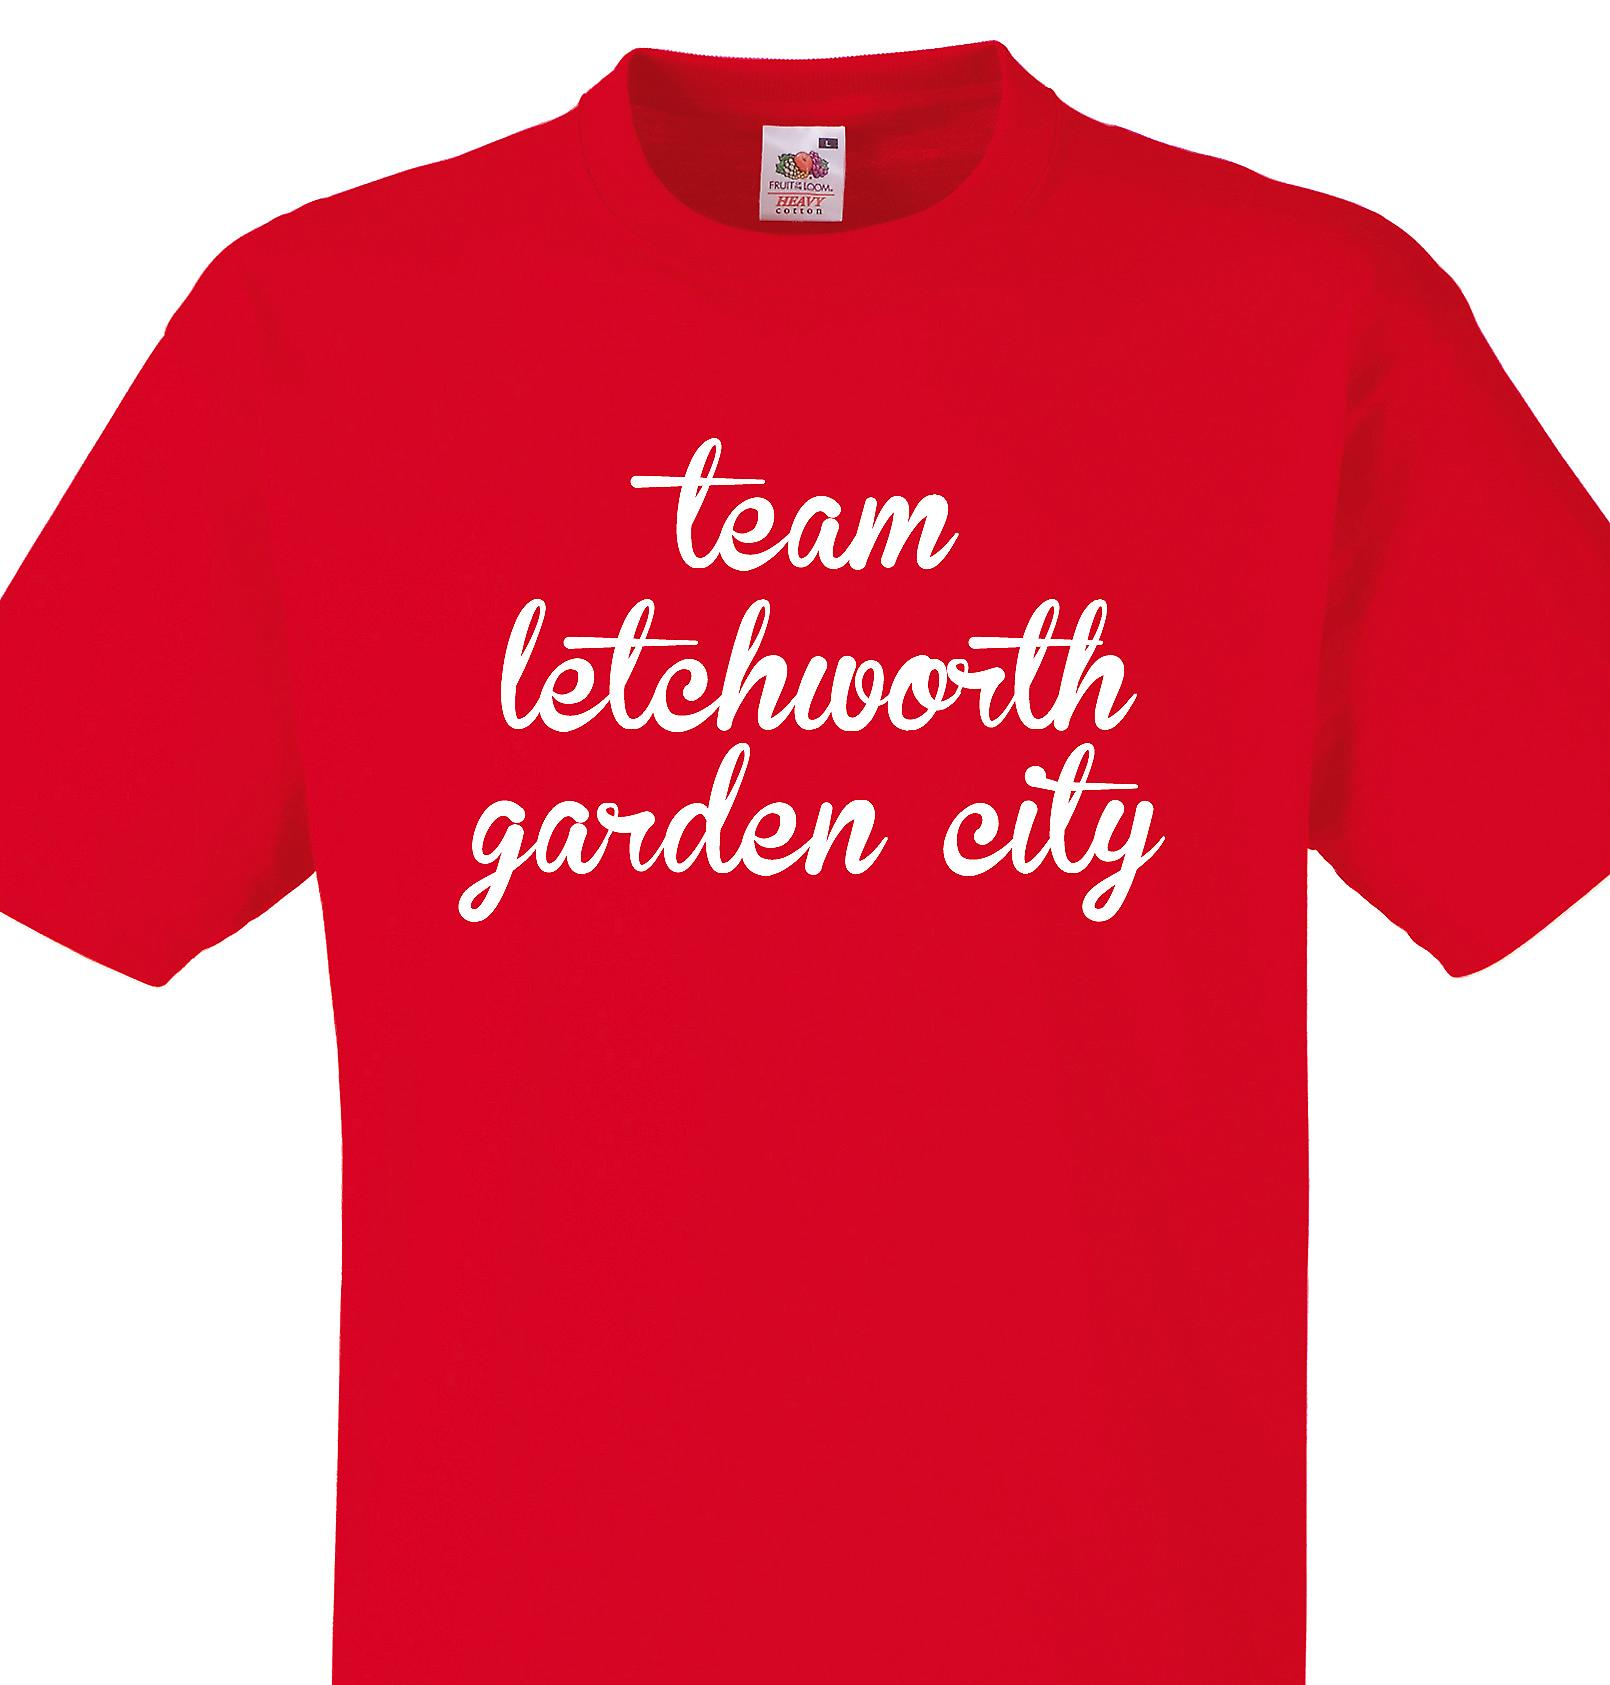 Team Letchworth garden city Red T shirt